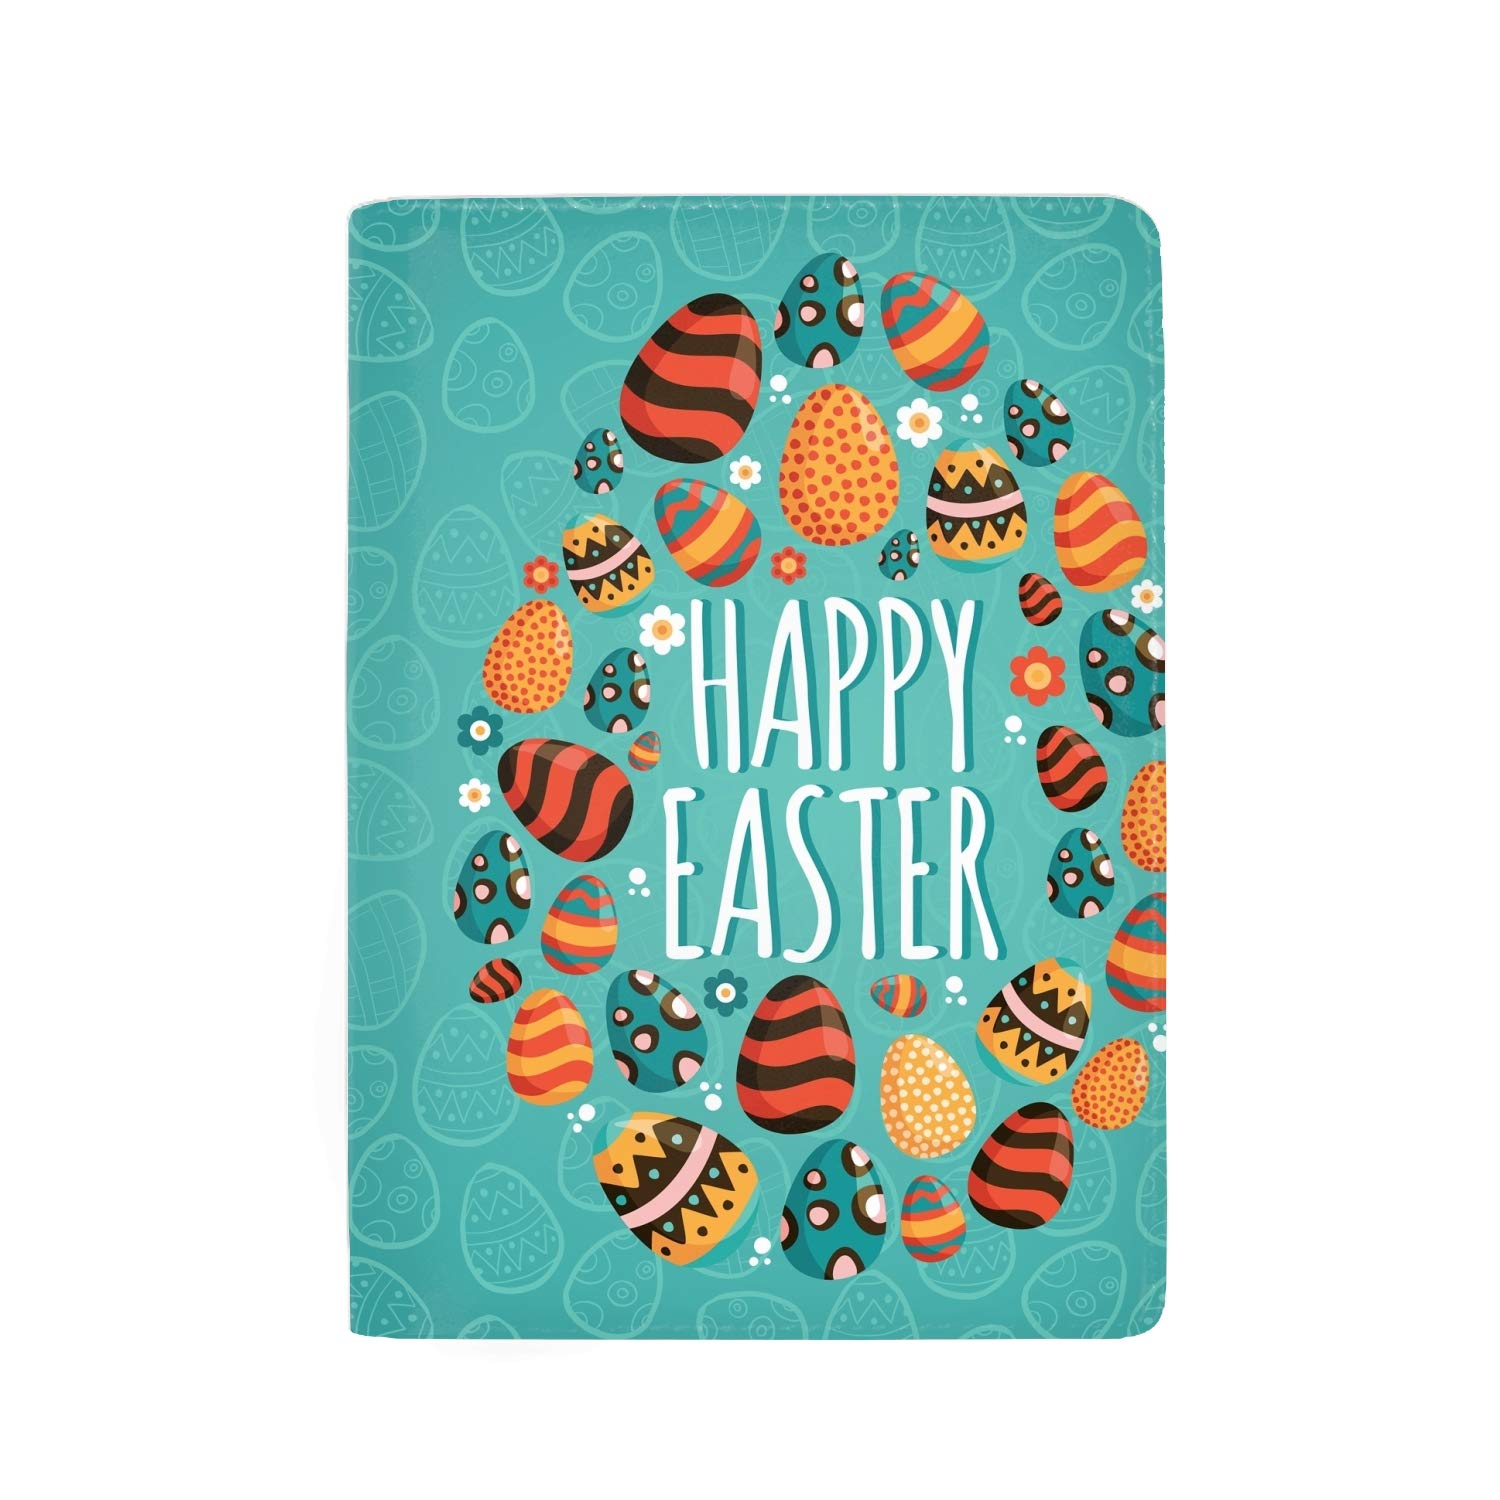 Leather Passport Holder Wallet Cover Case RFID Blocking Travel Wallet Happy Easter Day